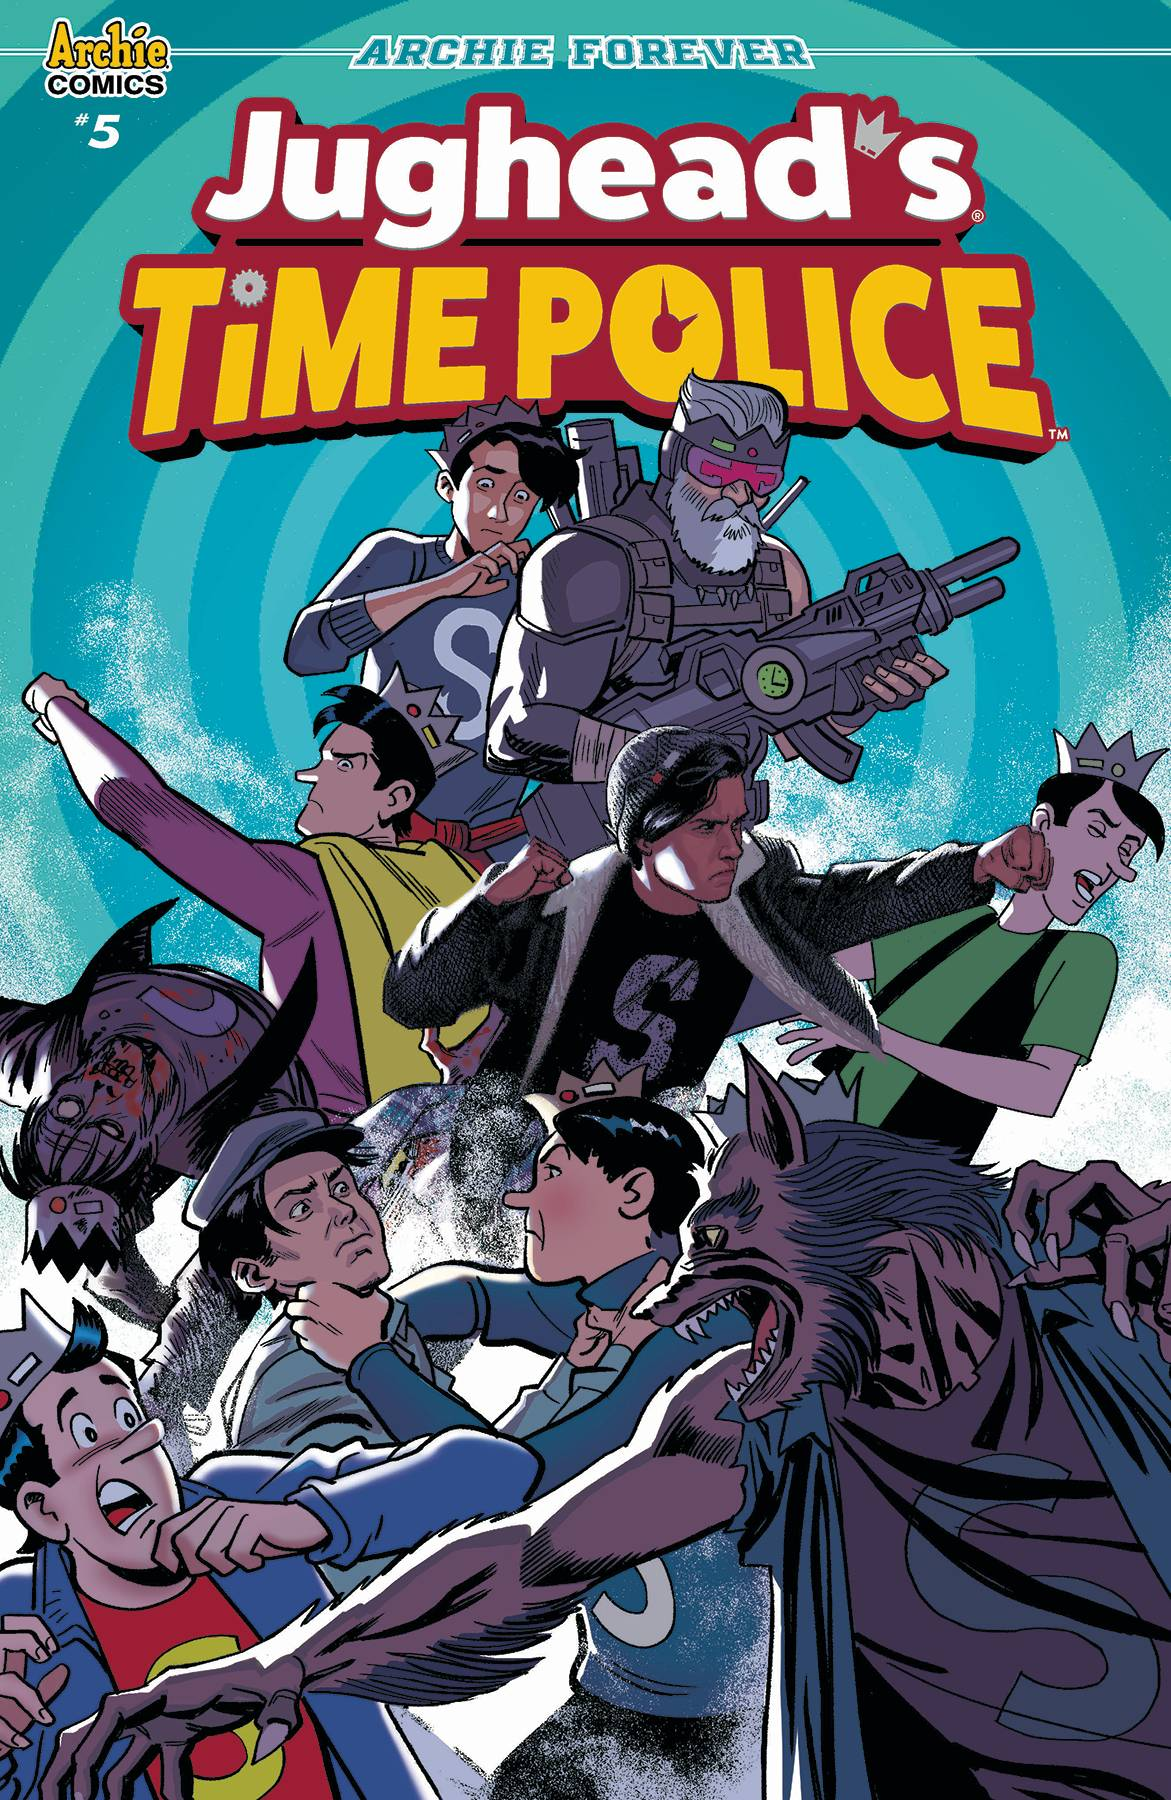 Jughead's Time Police #5 (2019)